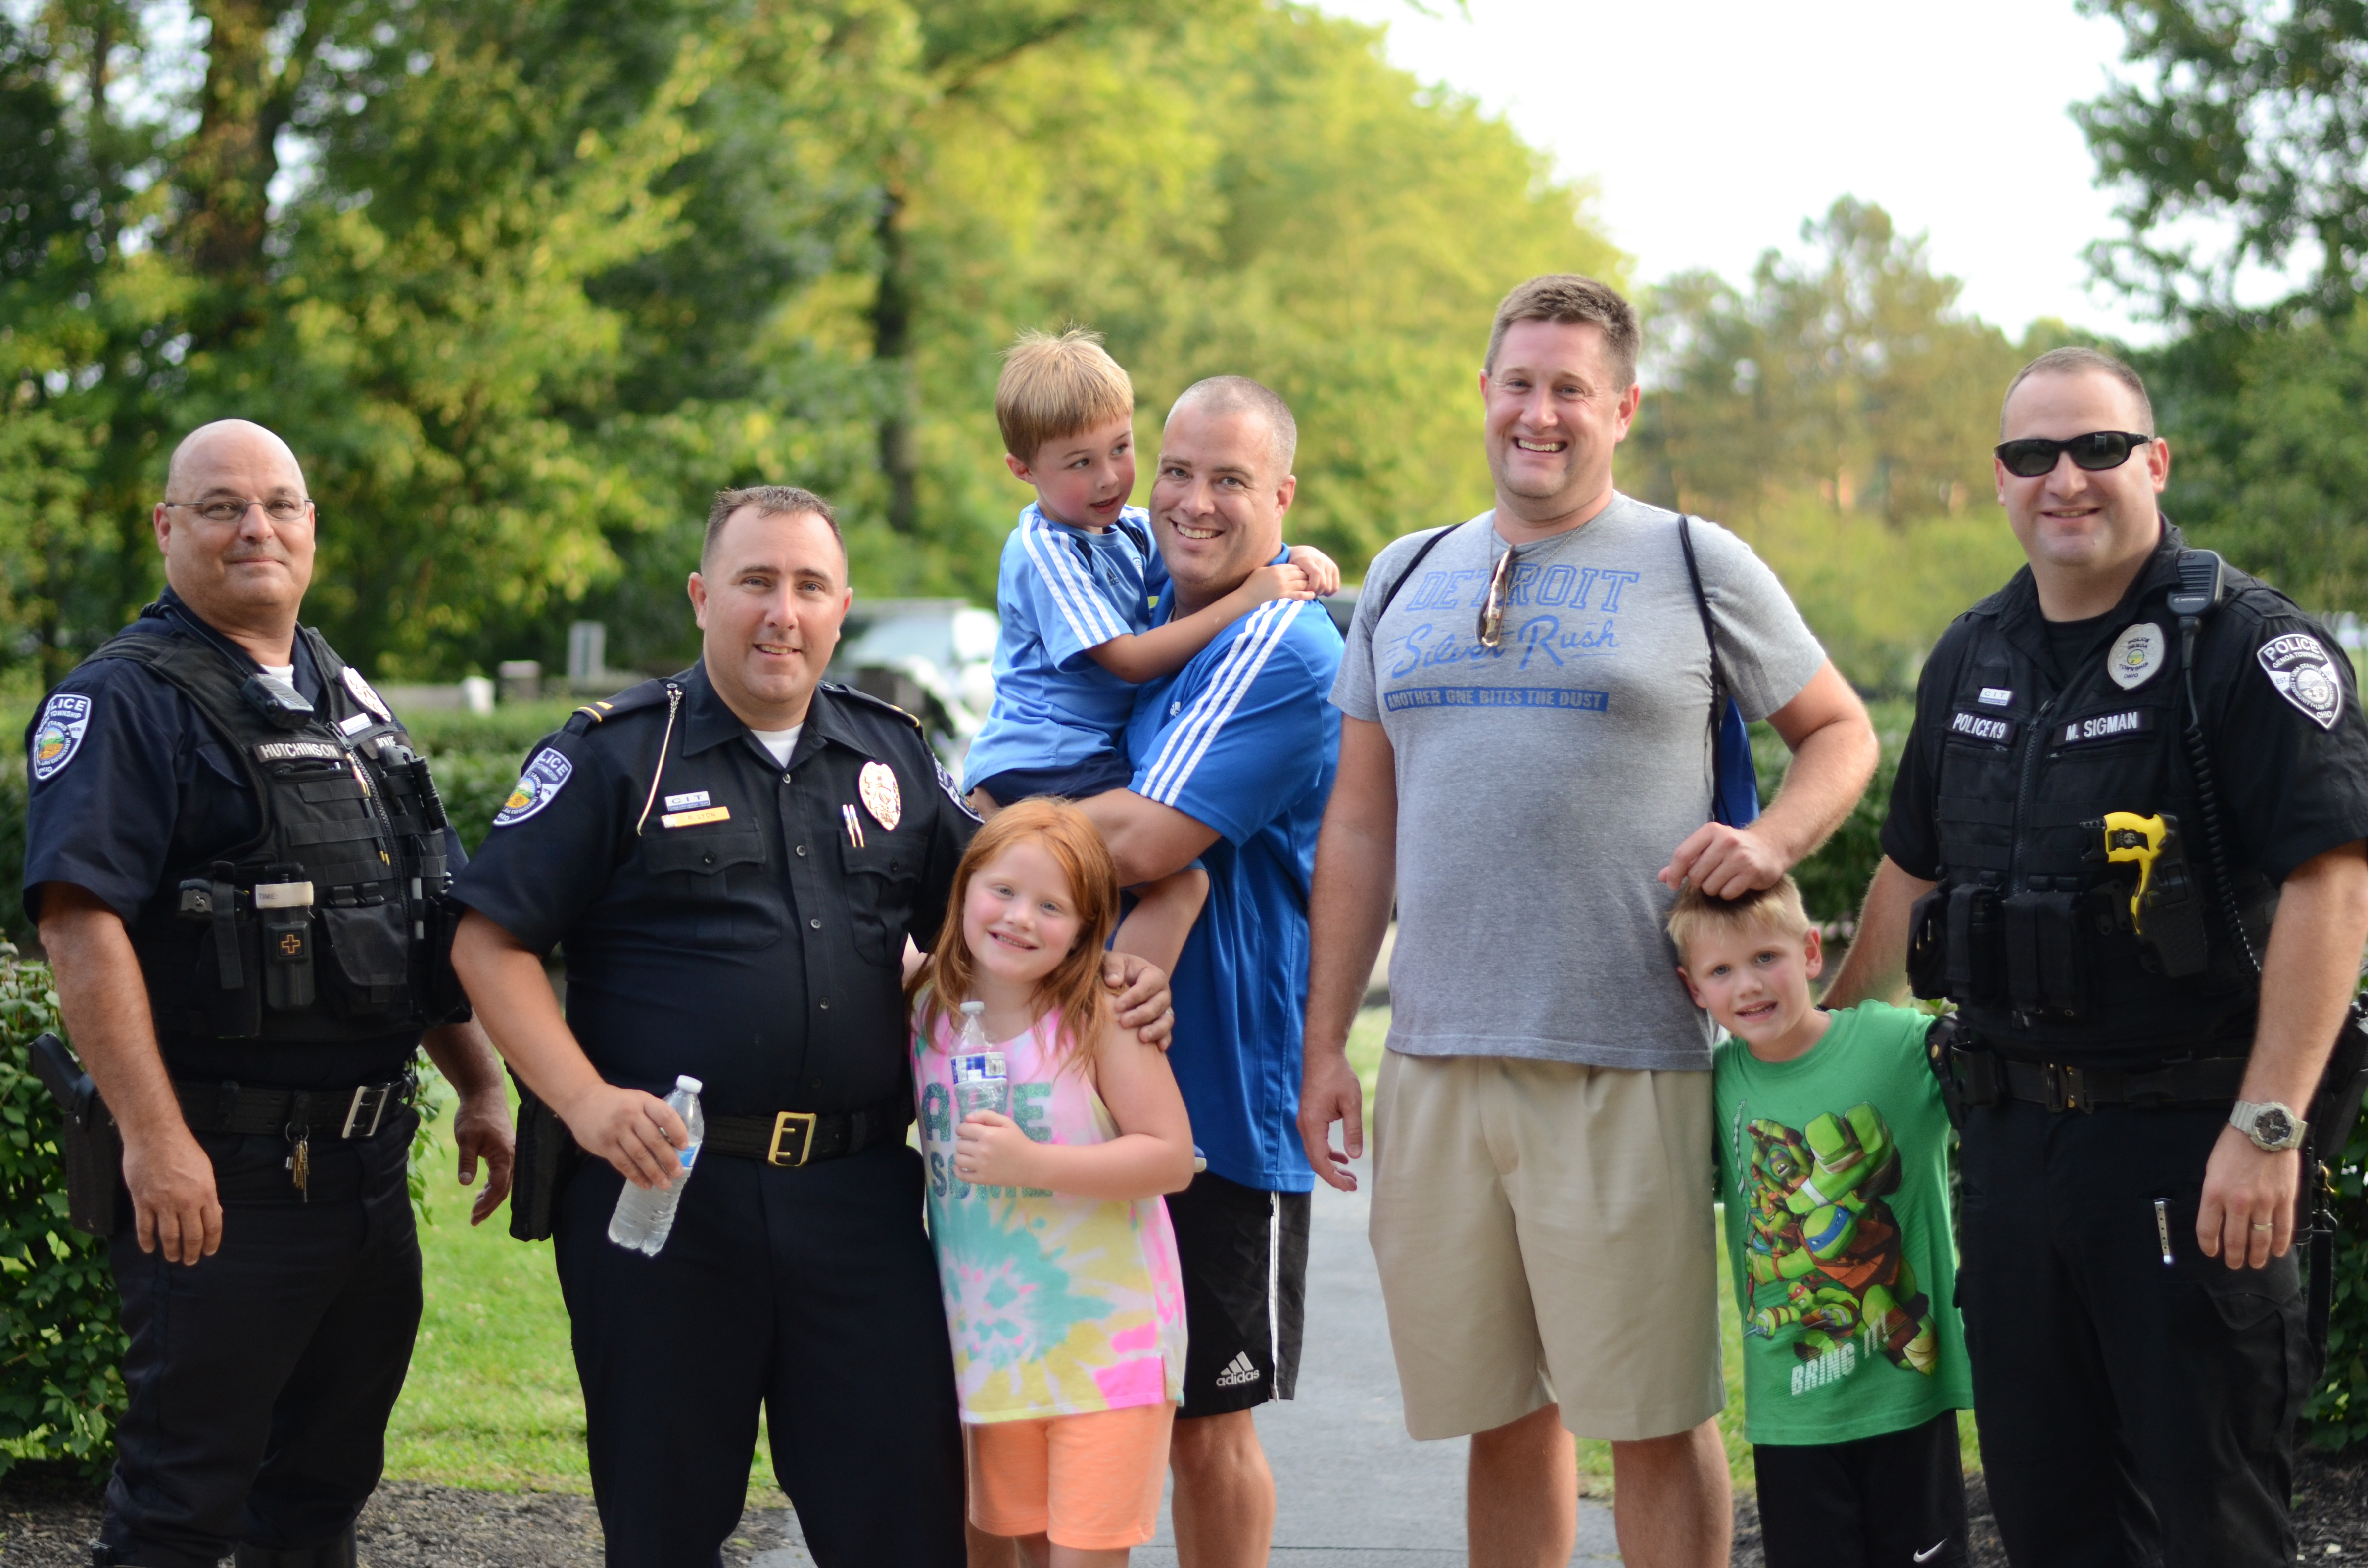 Police meet and greet at National Night Out 2017